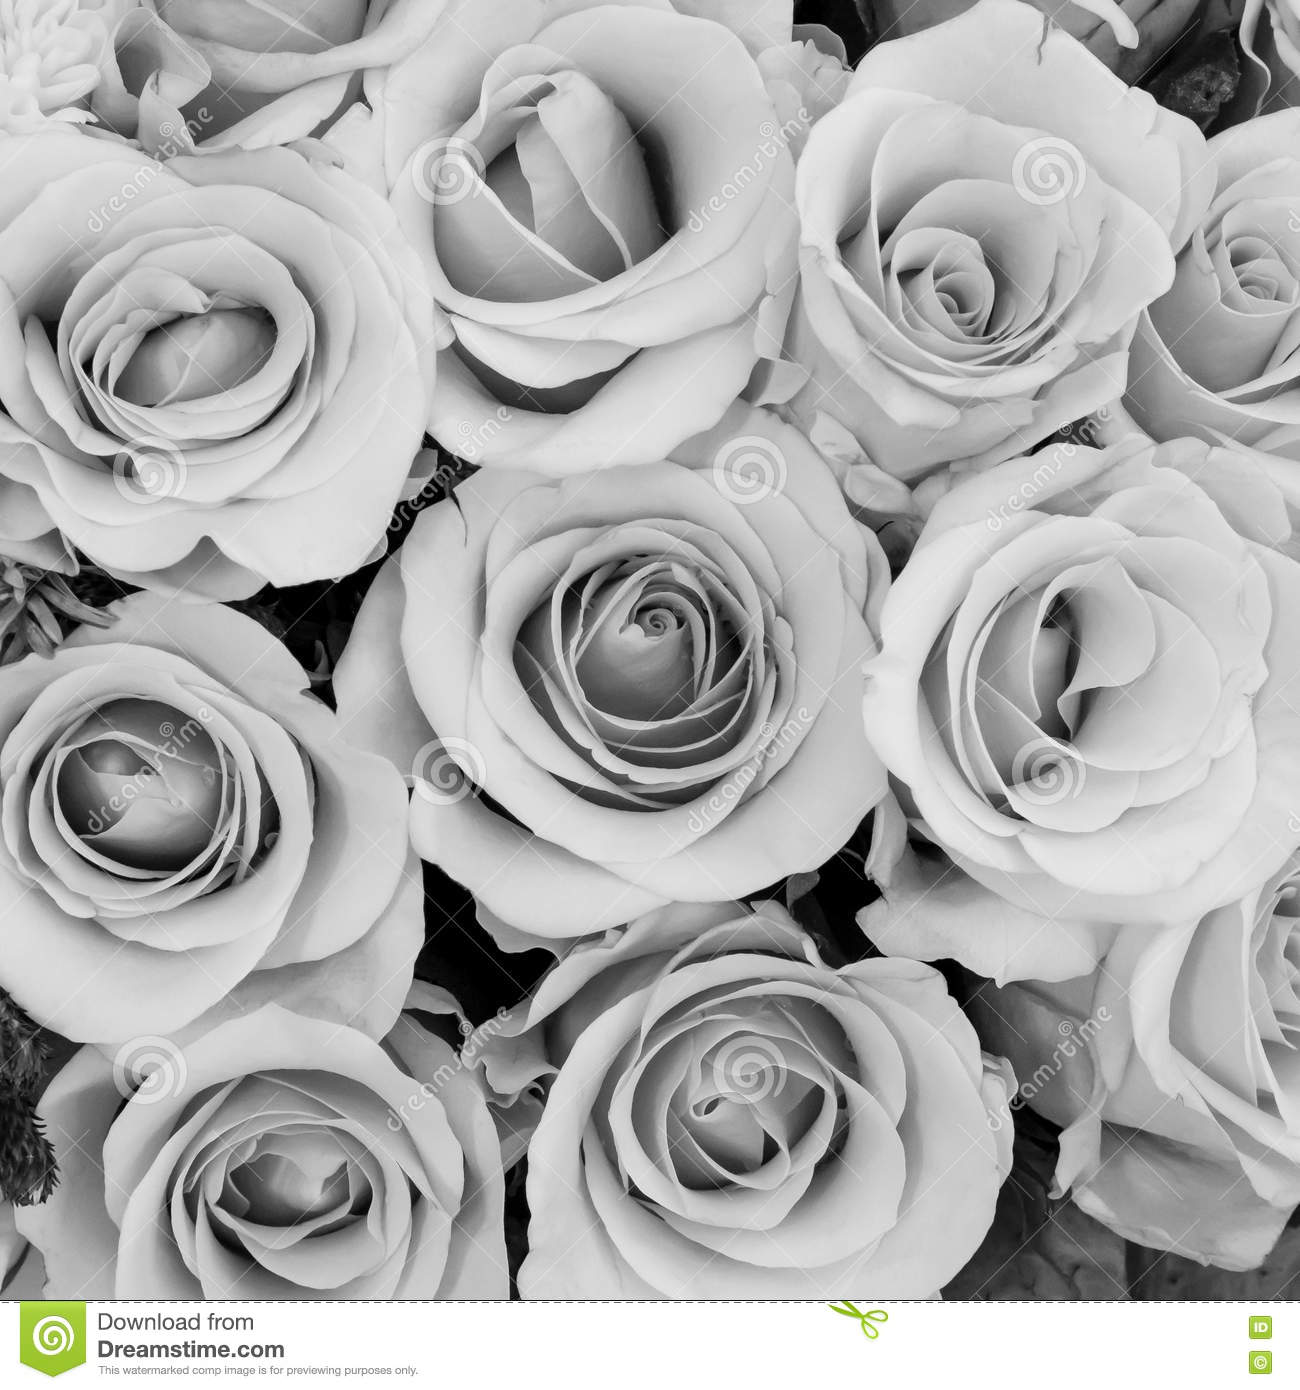 The Group Of Beautiful Roses Flower In Black And White Tone